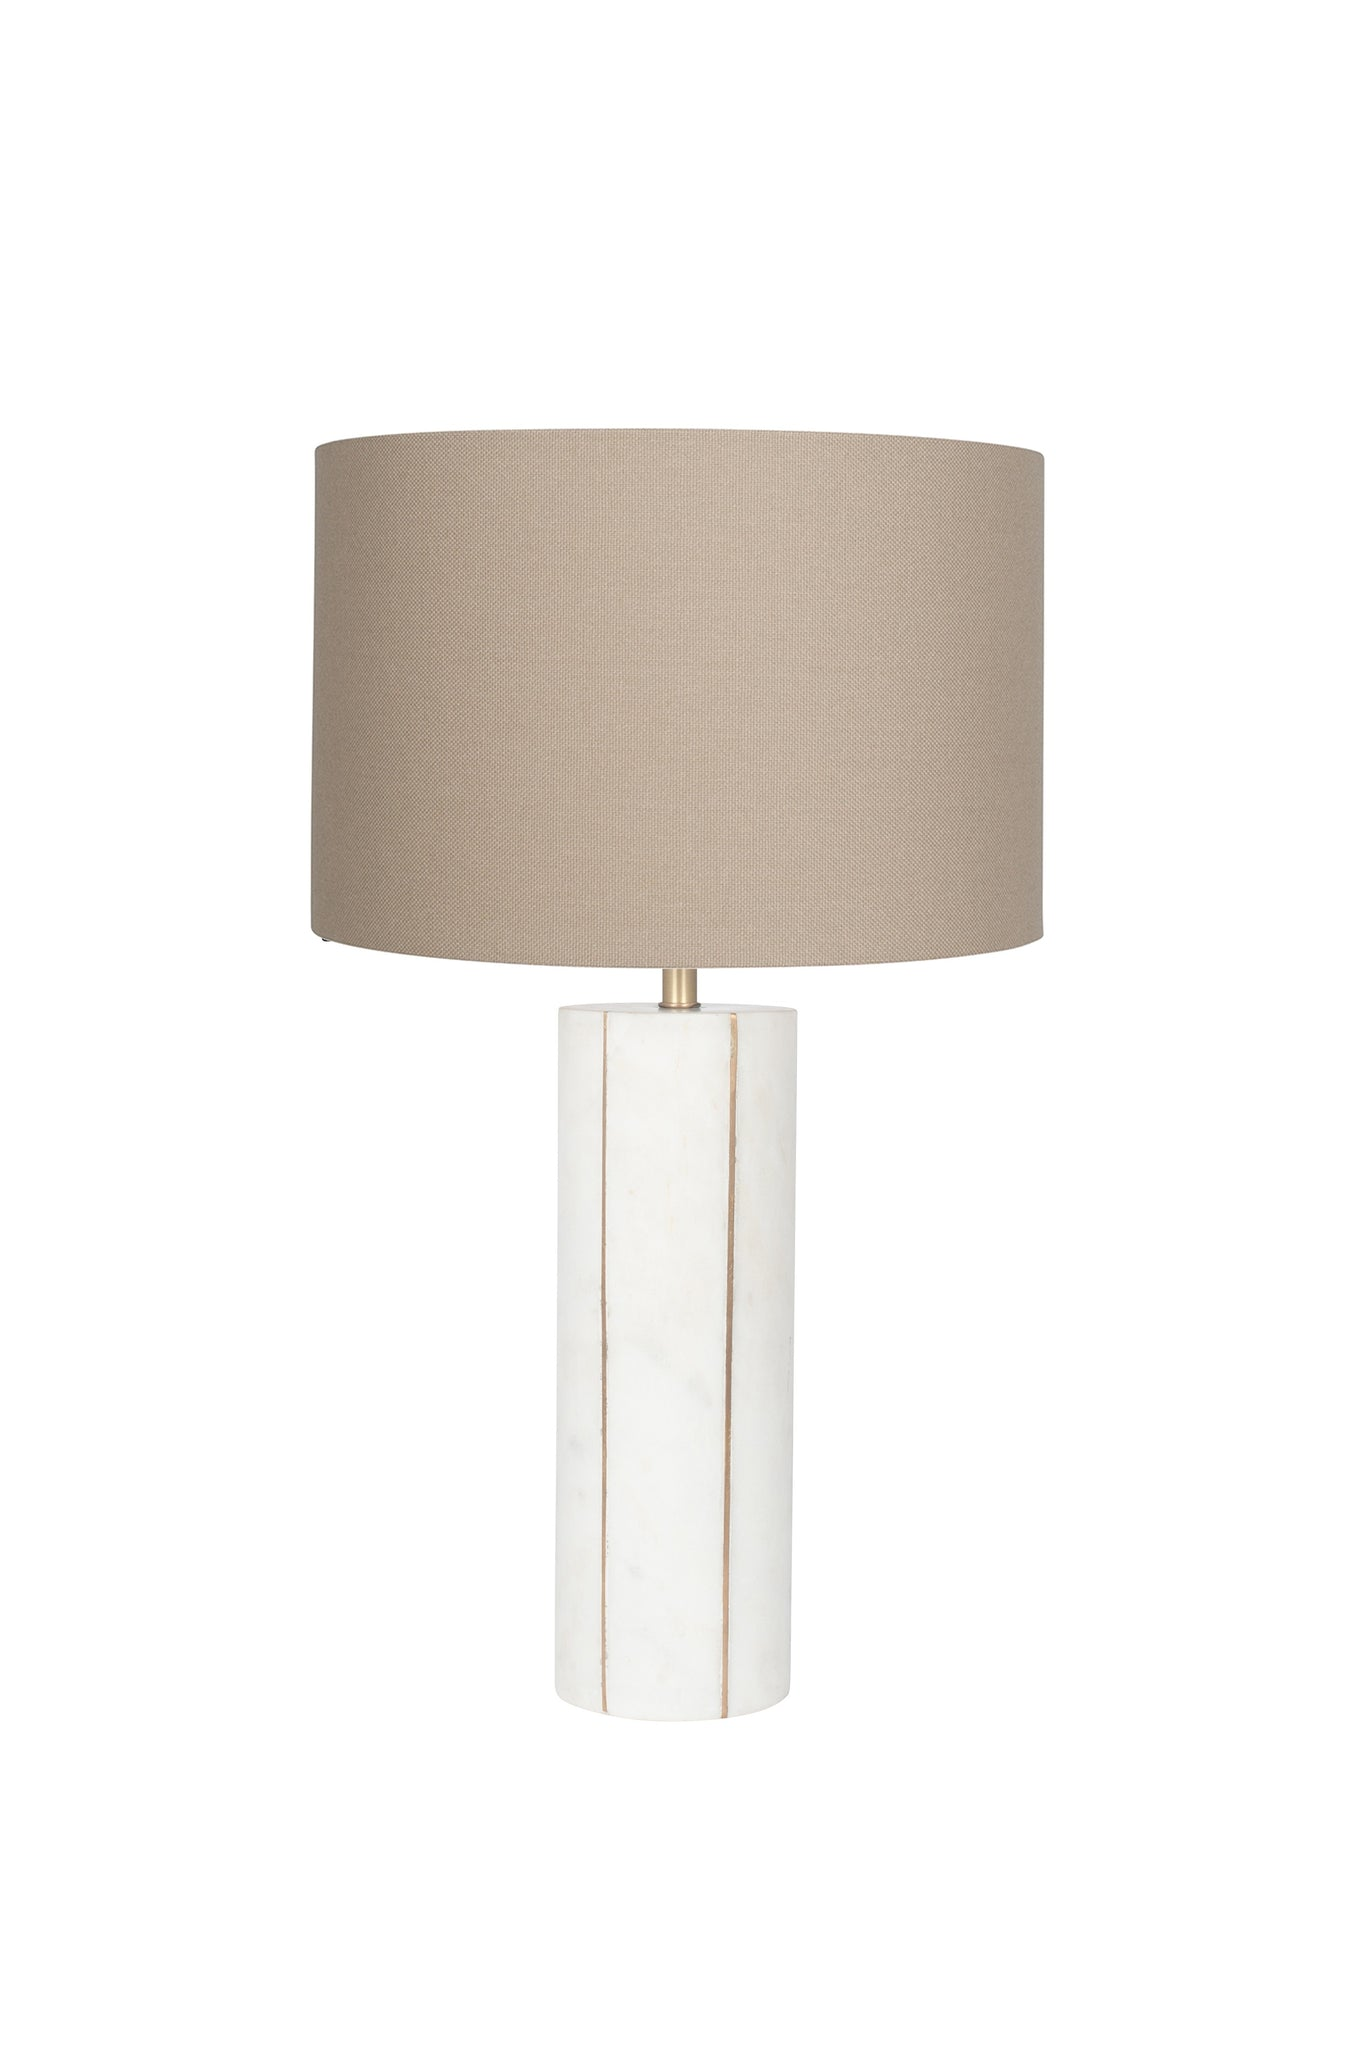 Peyrou Table Lamp - Marble and Gold Metal